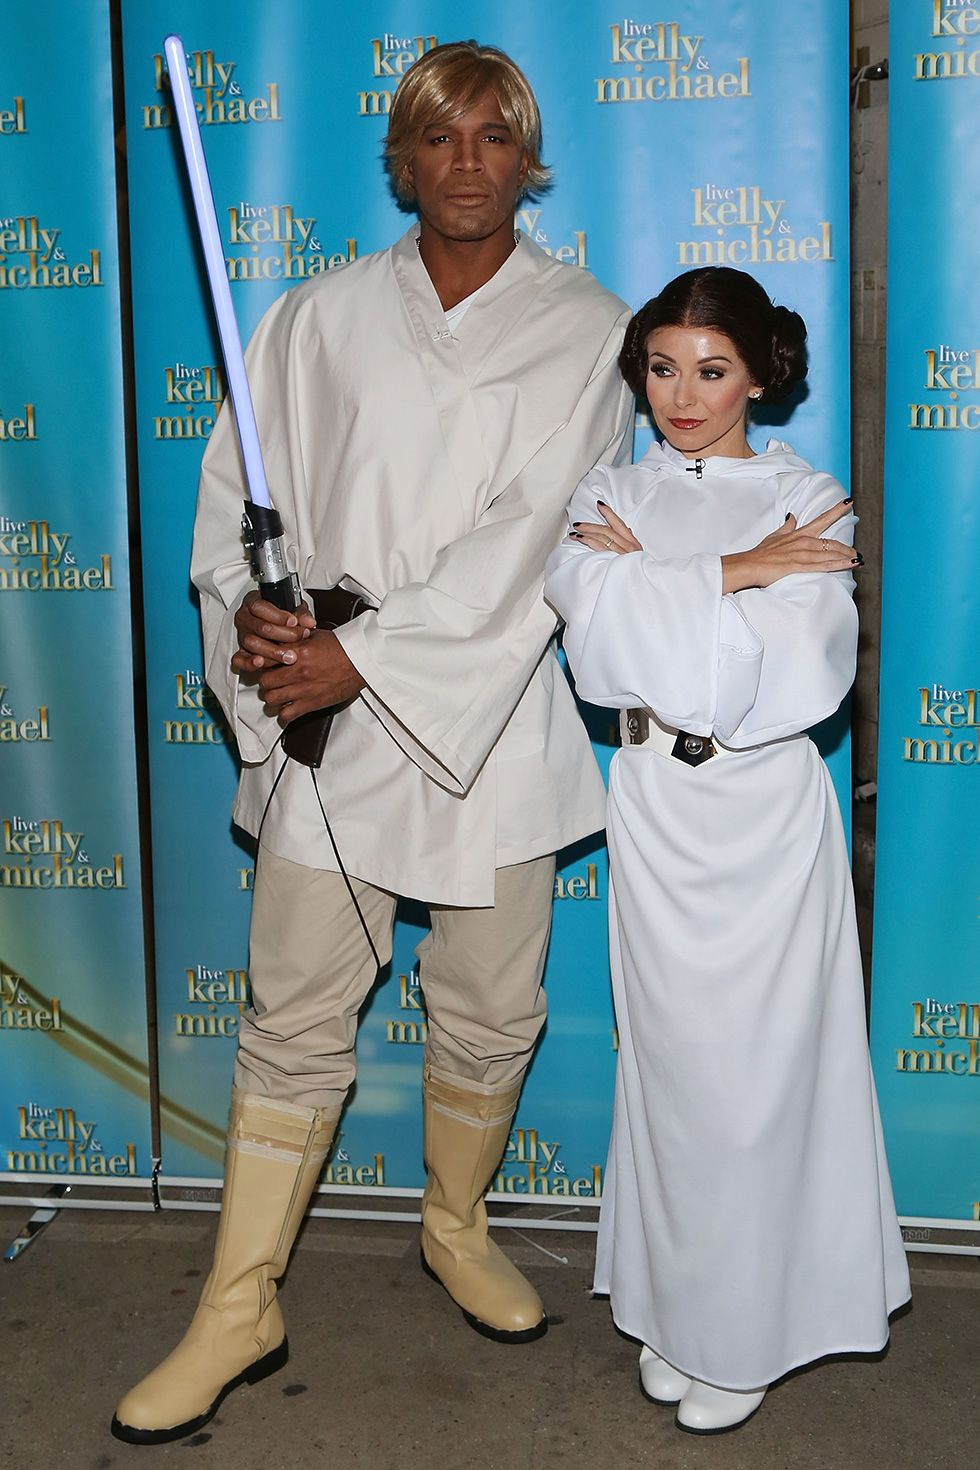 Michael Strahan and Kelly Ripa - Luke Skywalker and Princess Leia Kelly and Michel were at it again in 2015, dressed up as Luke Skywalker and Princess Leia.